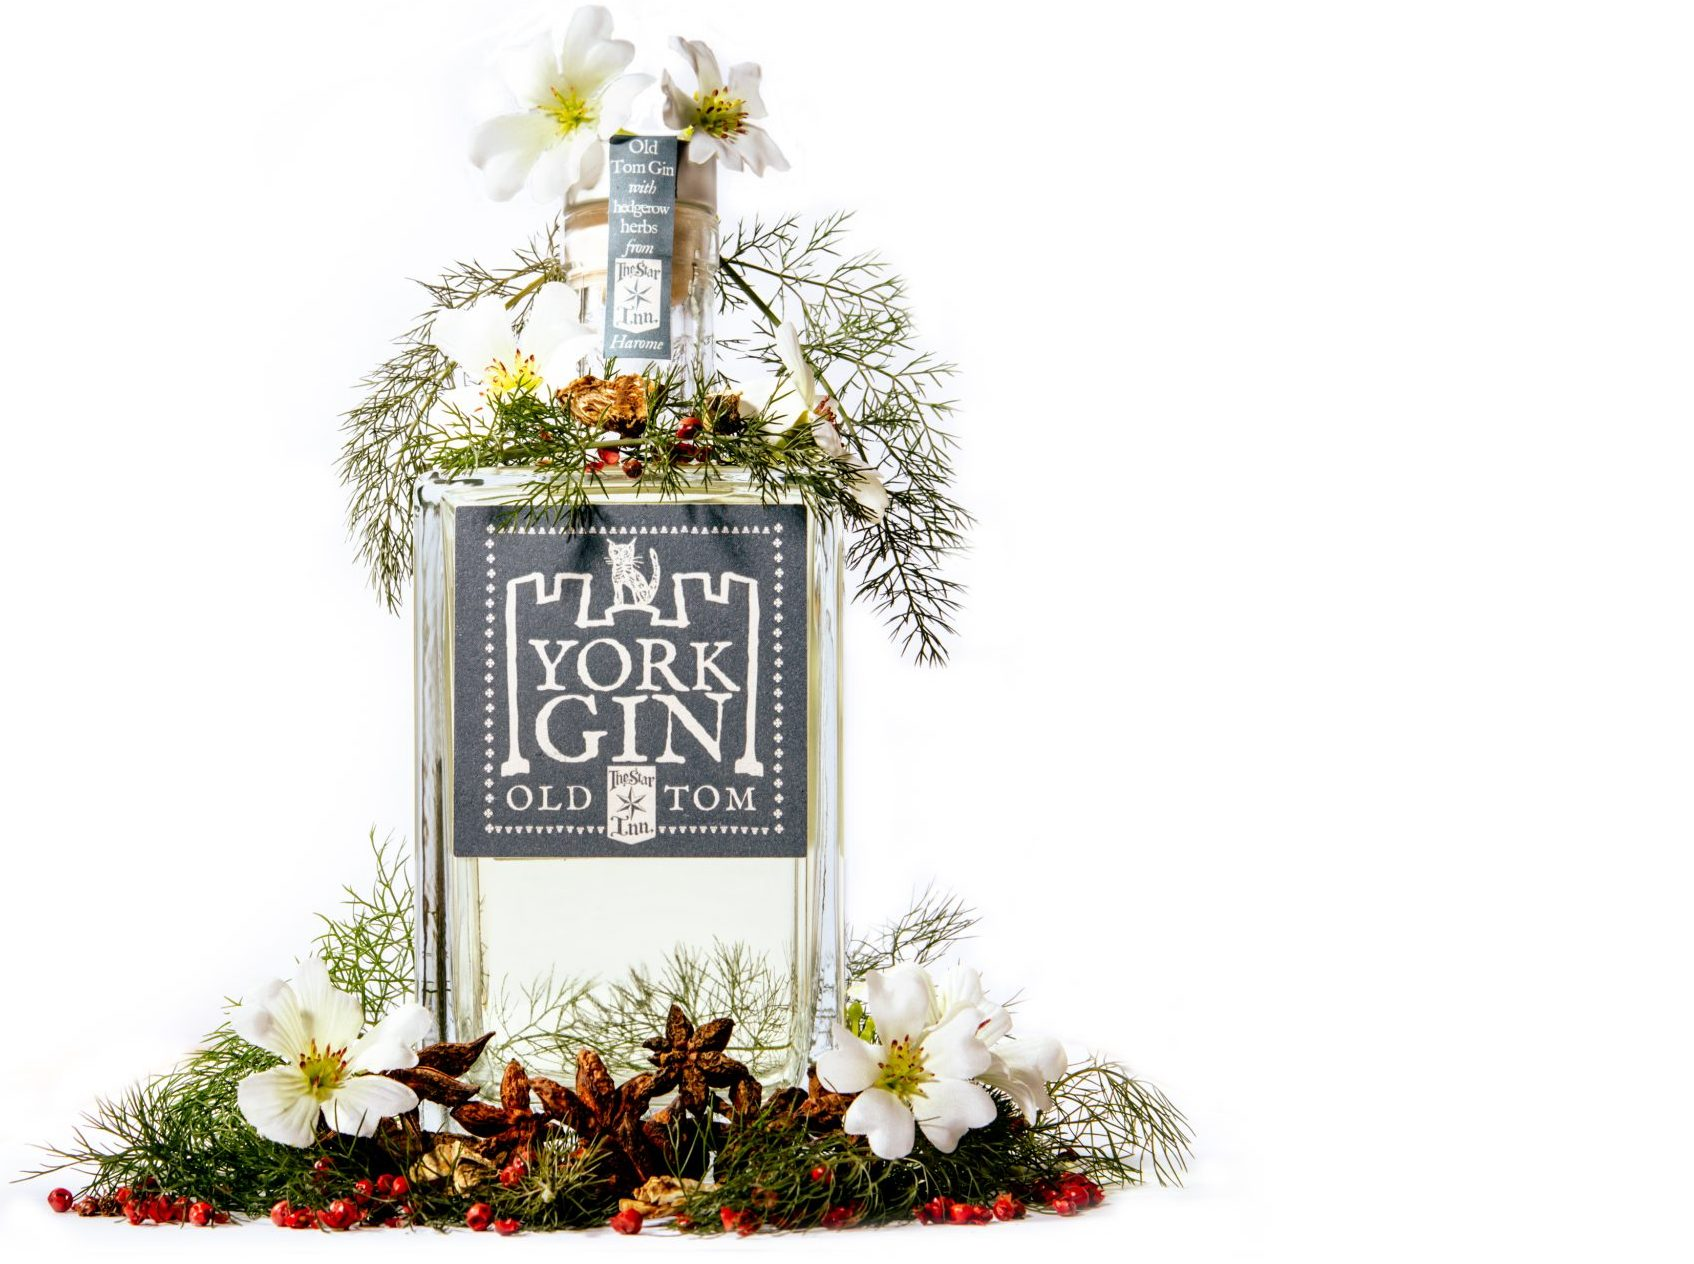 York Gin Old Tom with botanicals – CREDIT Matthew Kitchen Photography